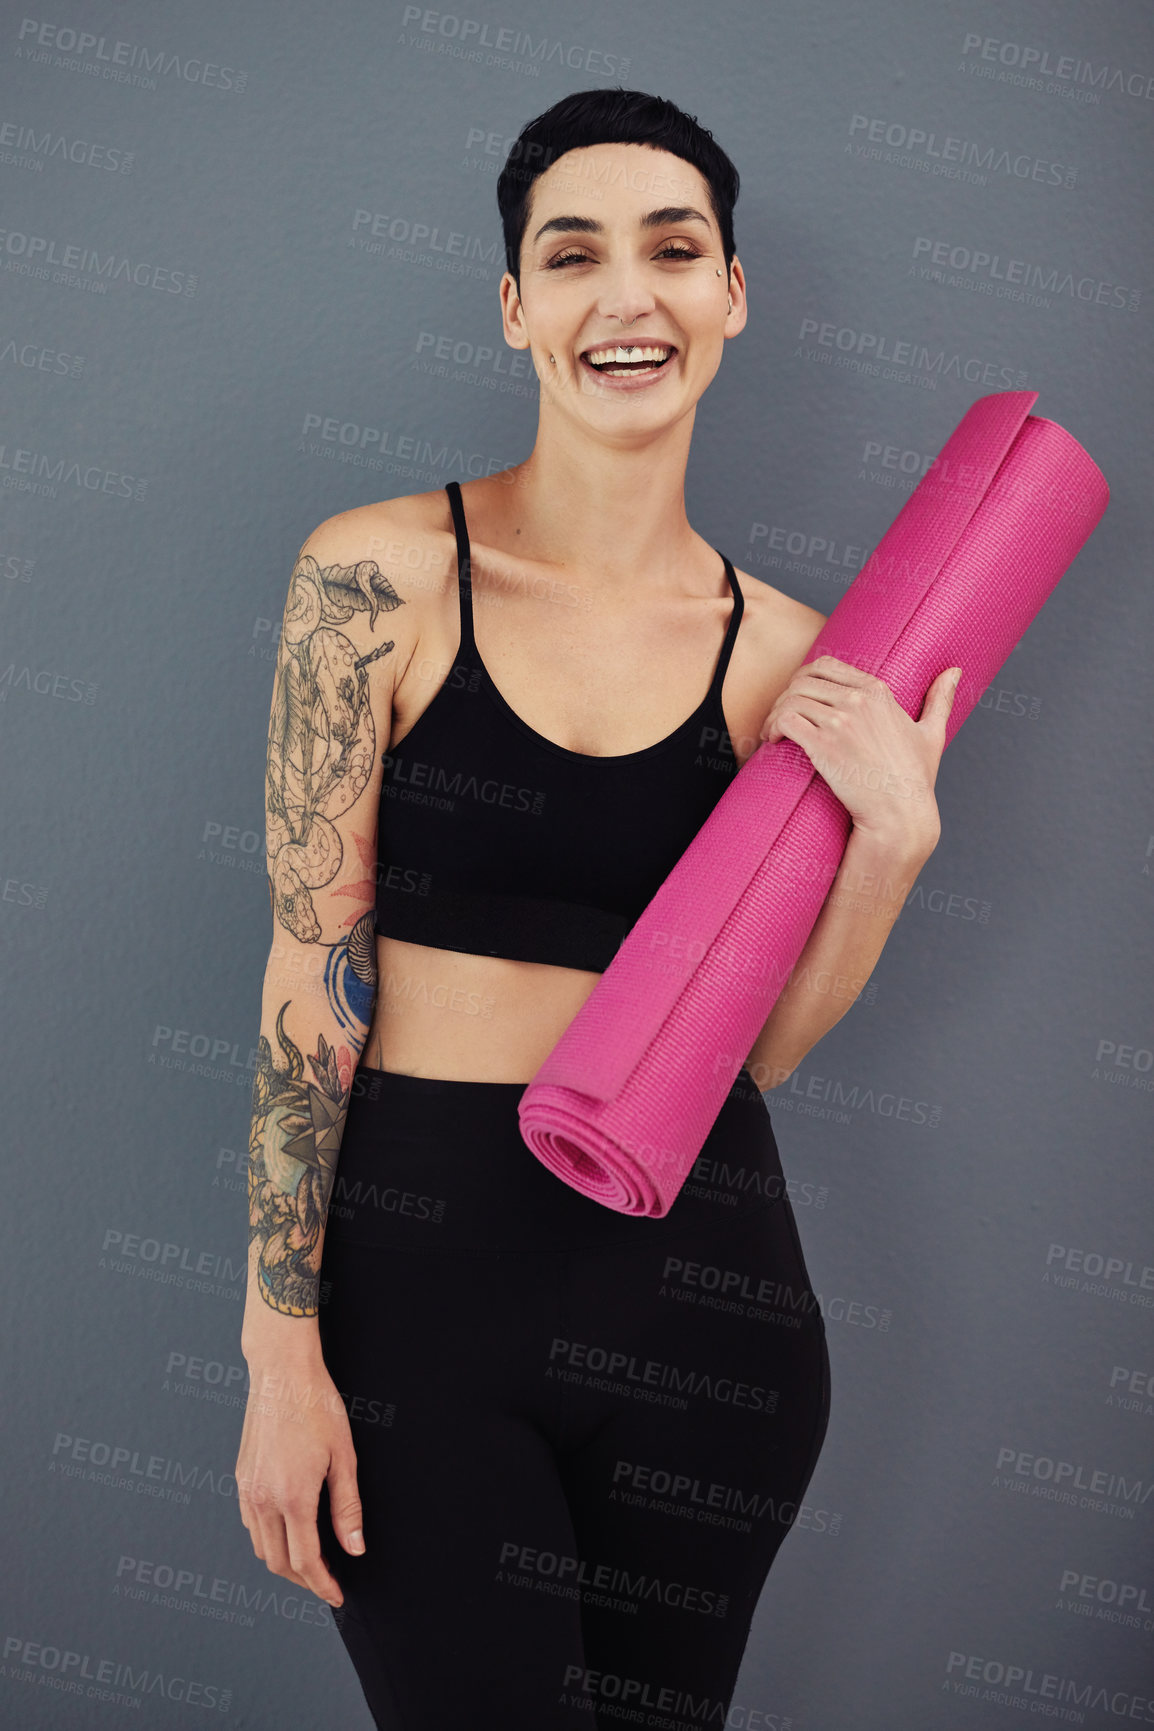 Buy stock photo Portrait of a confident young woman holding an exercise mat against a grey studio background